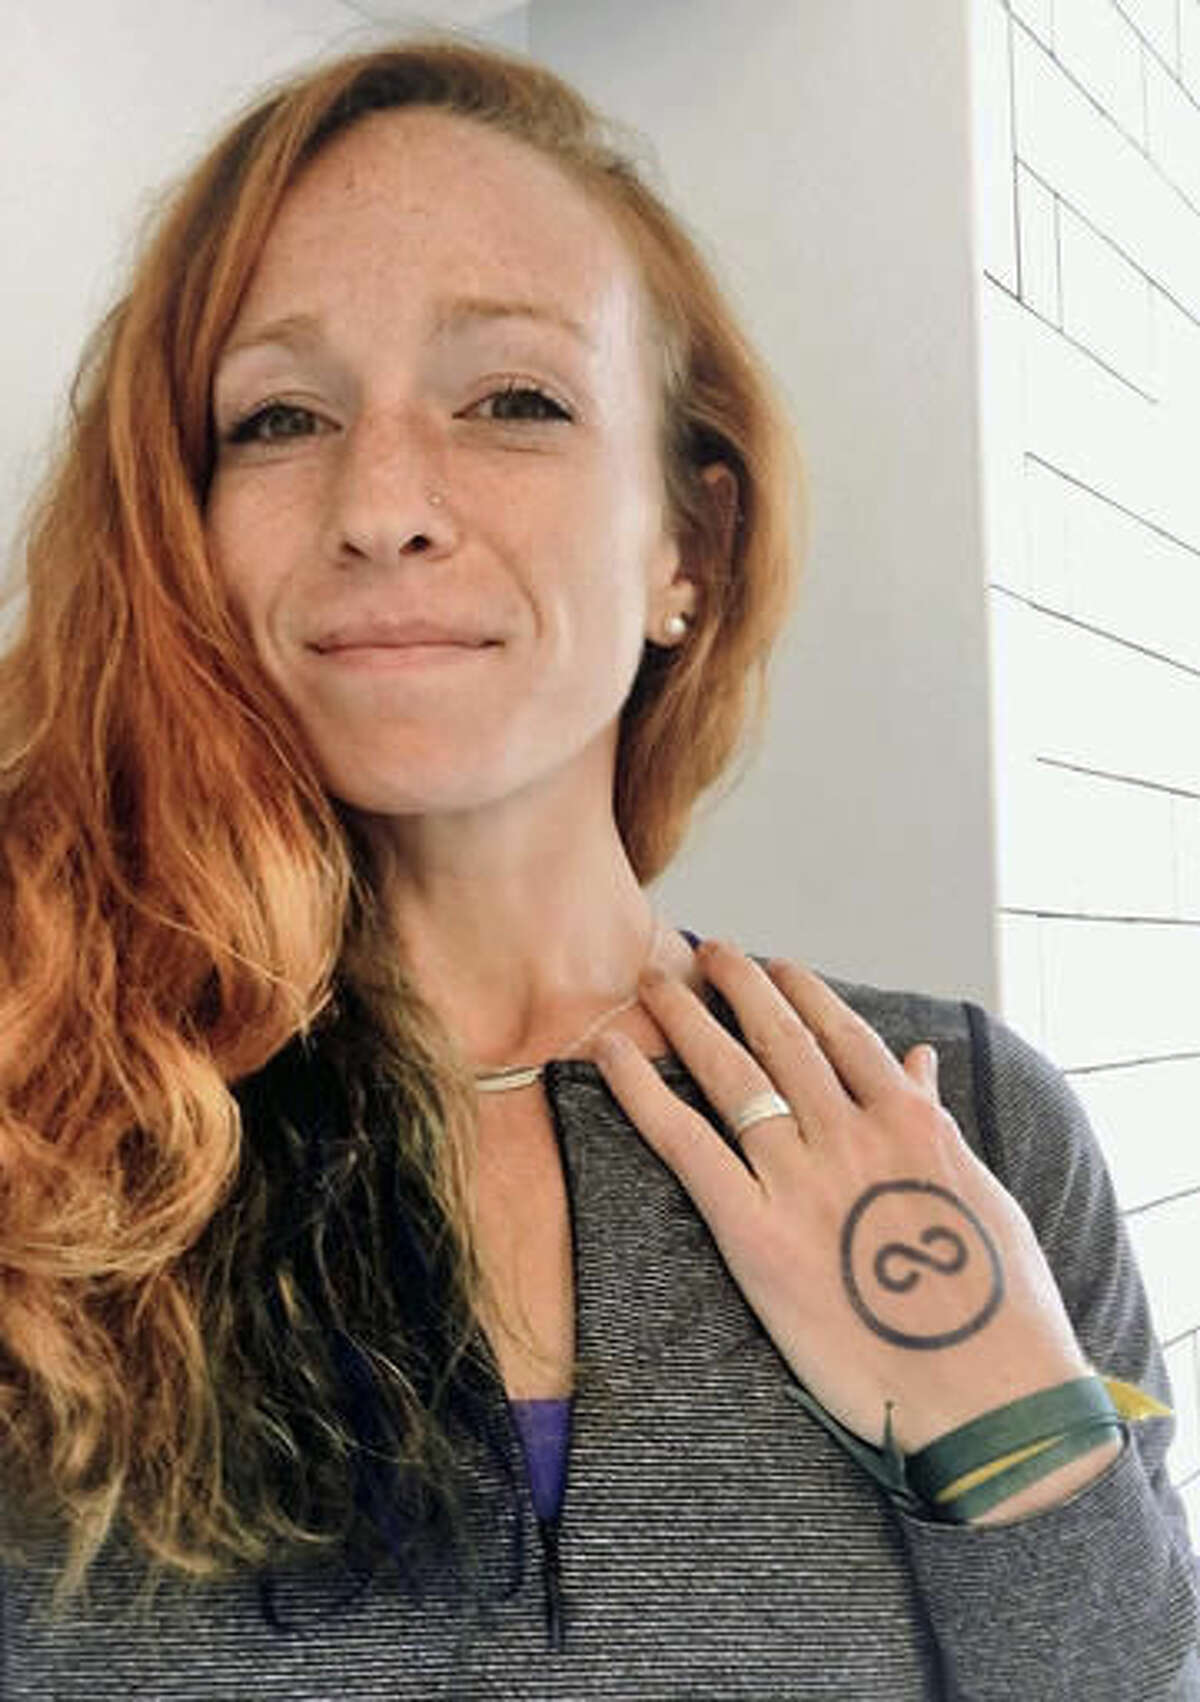 In this Nov. 2, 2016, self-portrait provided by Esther Atkins, the elite marathoner displays a temporary tattoo of the Clean Sport Collective in Greenville, S.C. The new anti-doping initiative, launched earlier this month by U.S. athletes and fitness companies through a social media campaign, promotes drug-free and transparent training and competition. Participating athletes publicly pledge to live, train and compete